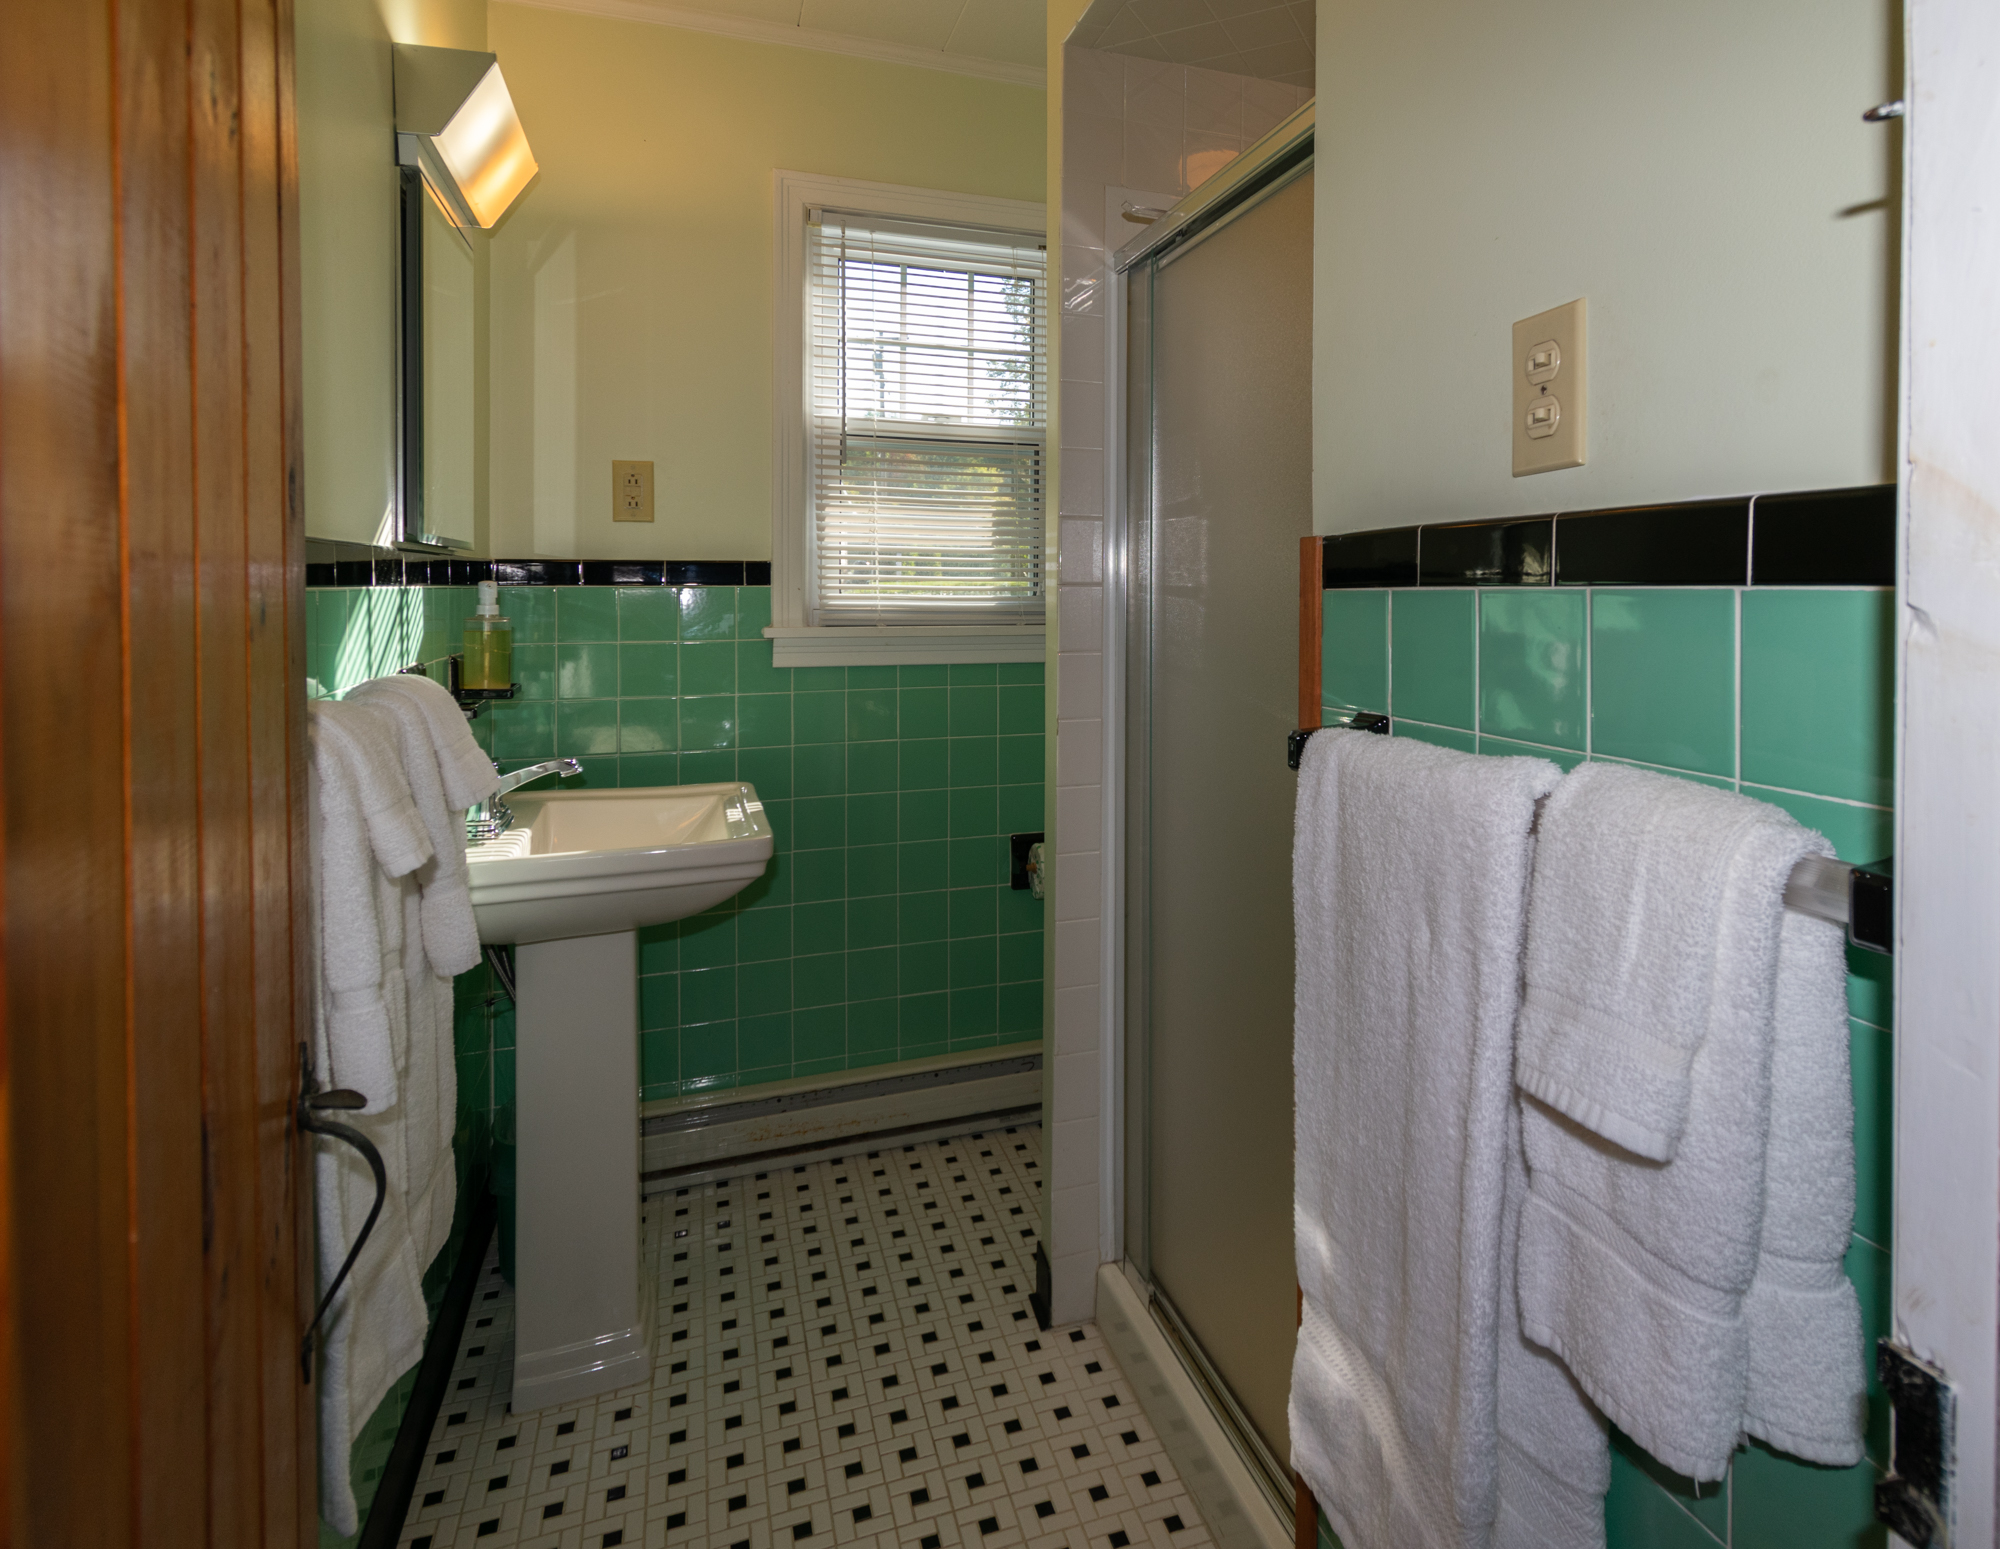 Lake George grounds view vacation cabin rental #16 tiled bathroom with shower at Takundewide Cottages on Lake George